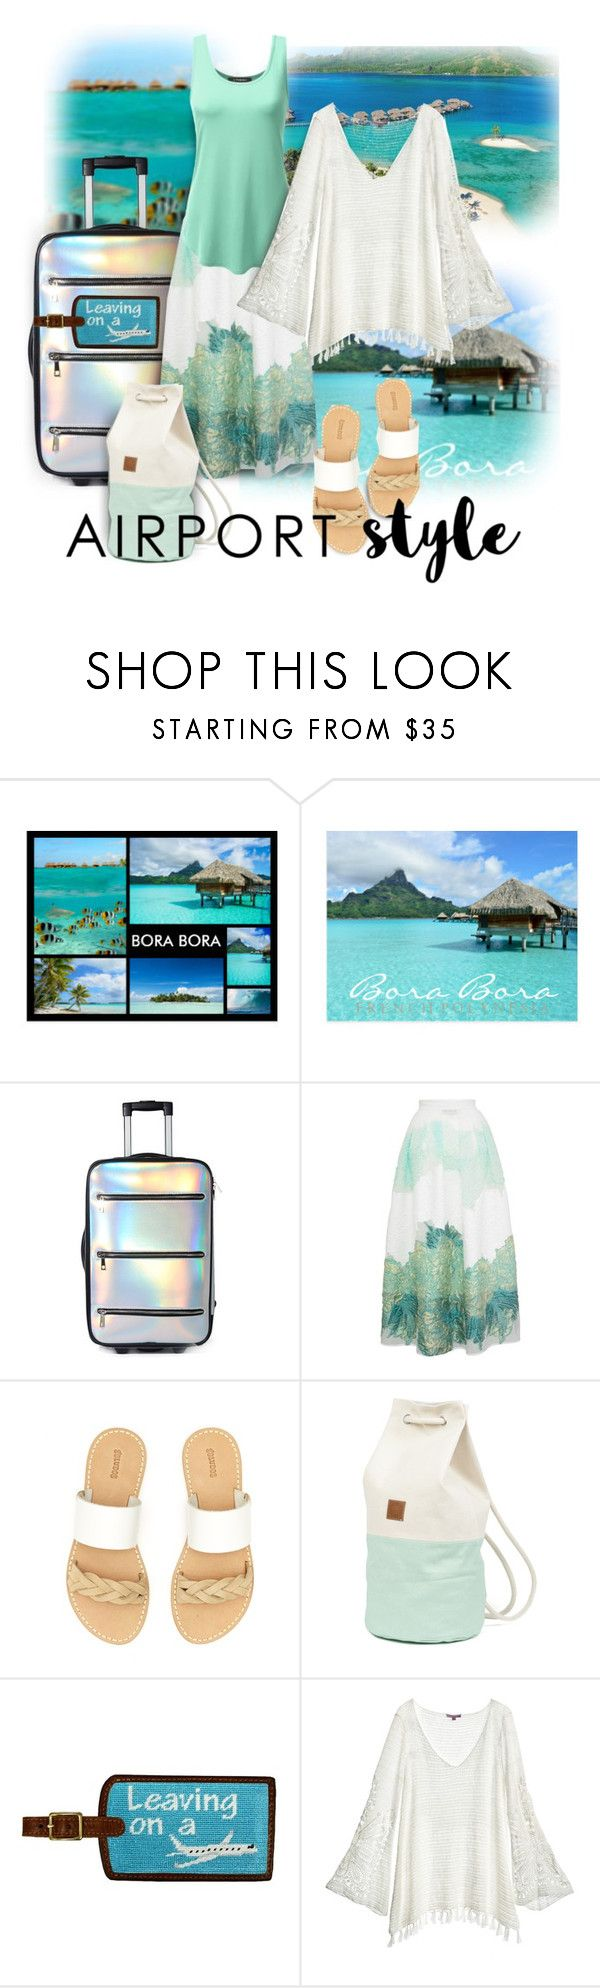 """Airport Style"" by constanceann ❤ liked on Polyvore featuring Bora Bora, Current Mood, Bora Aksu, Soludos, Calypso St. Barth, travel and summer2017"